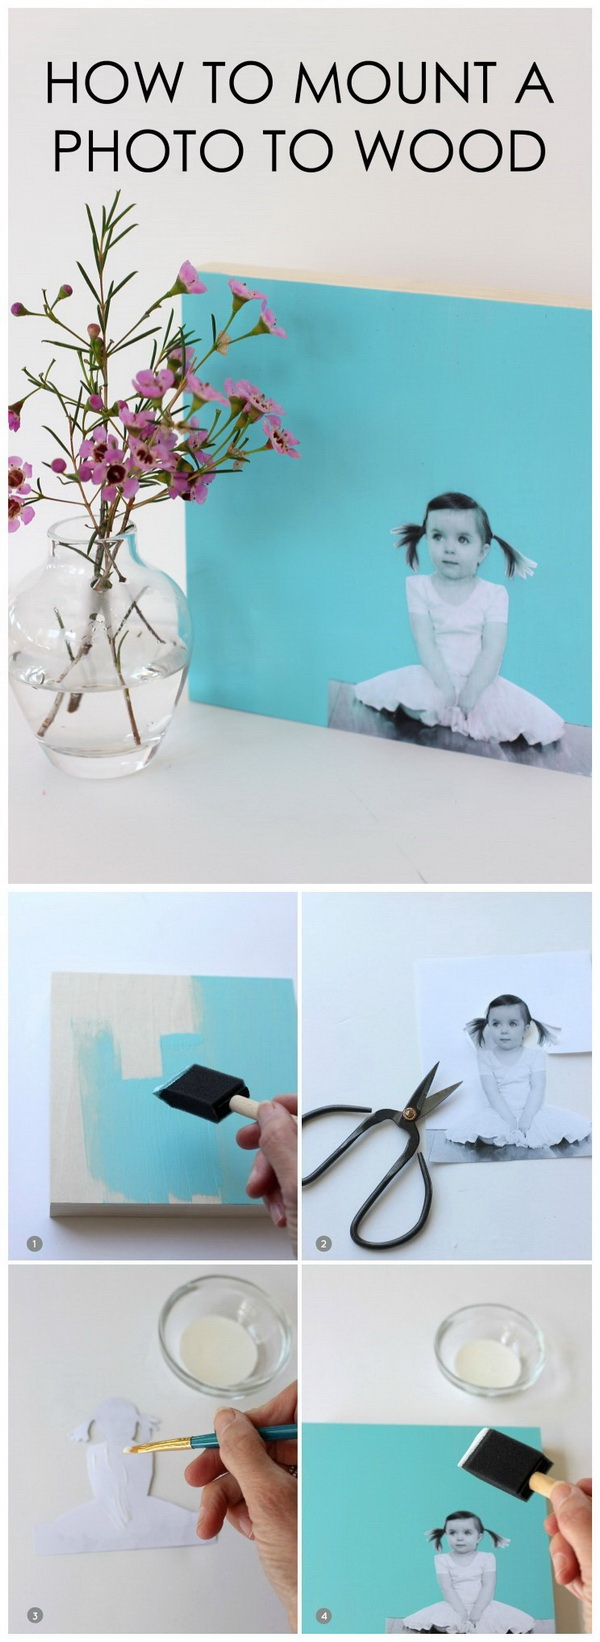 74 photo ideas of beautiful crafts with handicrafts